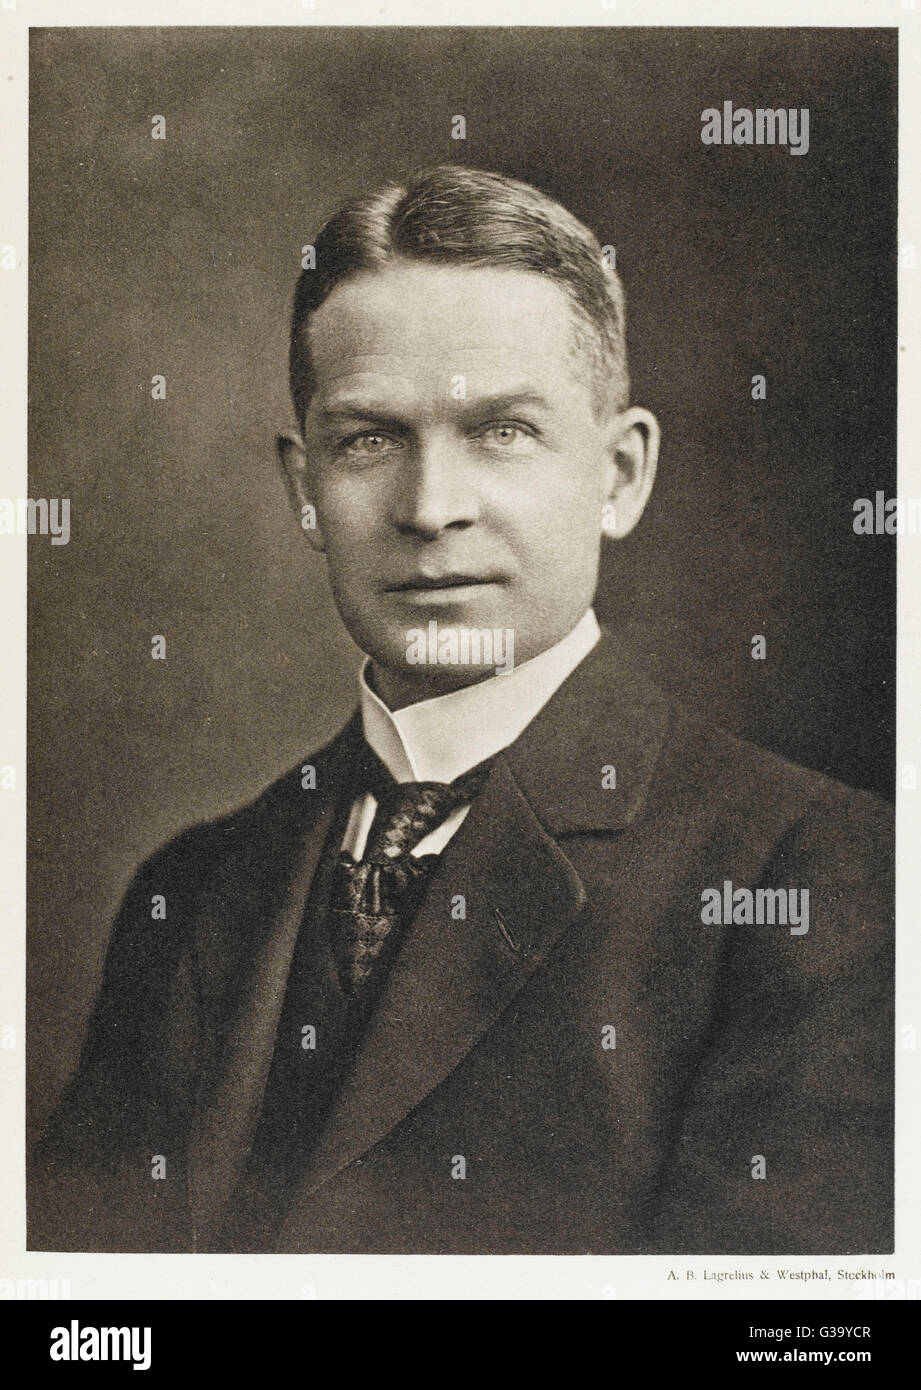 FREDERICK SODDY  English chemist        Date: 1877 - 1956 Stock Photo